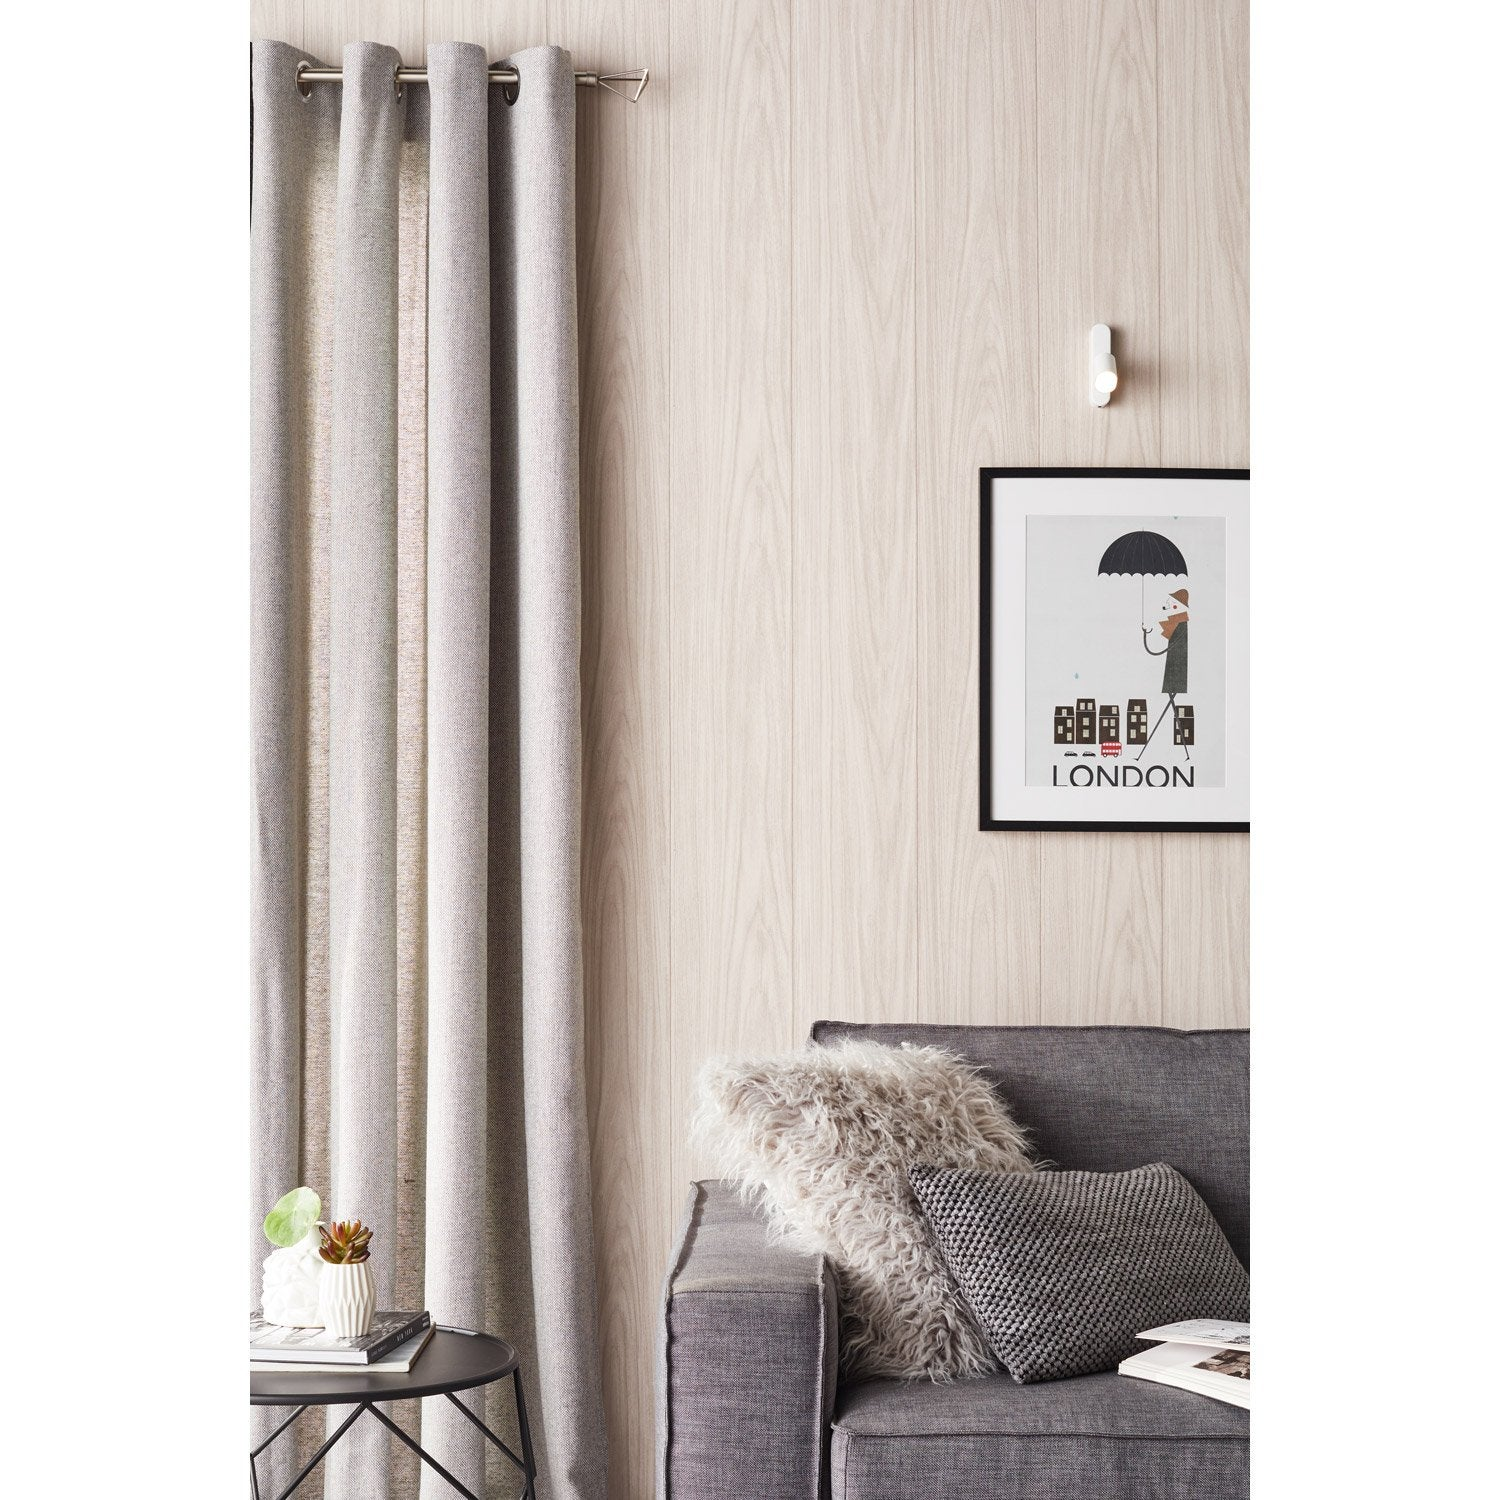 Tringle rideau design nickel mat 200 cm inspire leroy merlin - Barre rideau porte ...